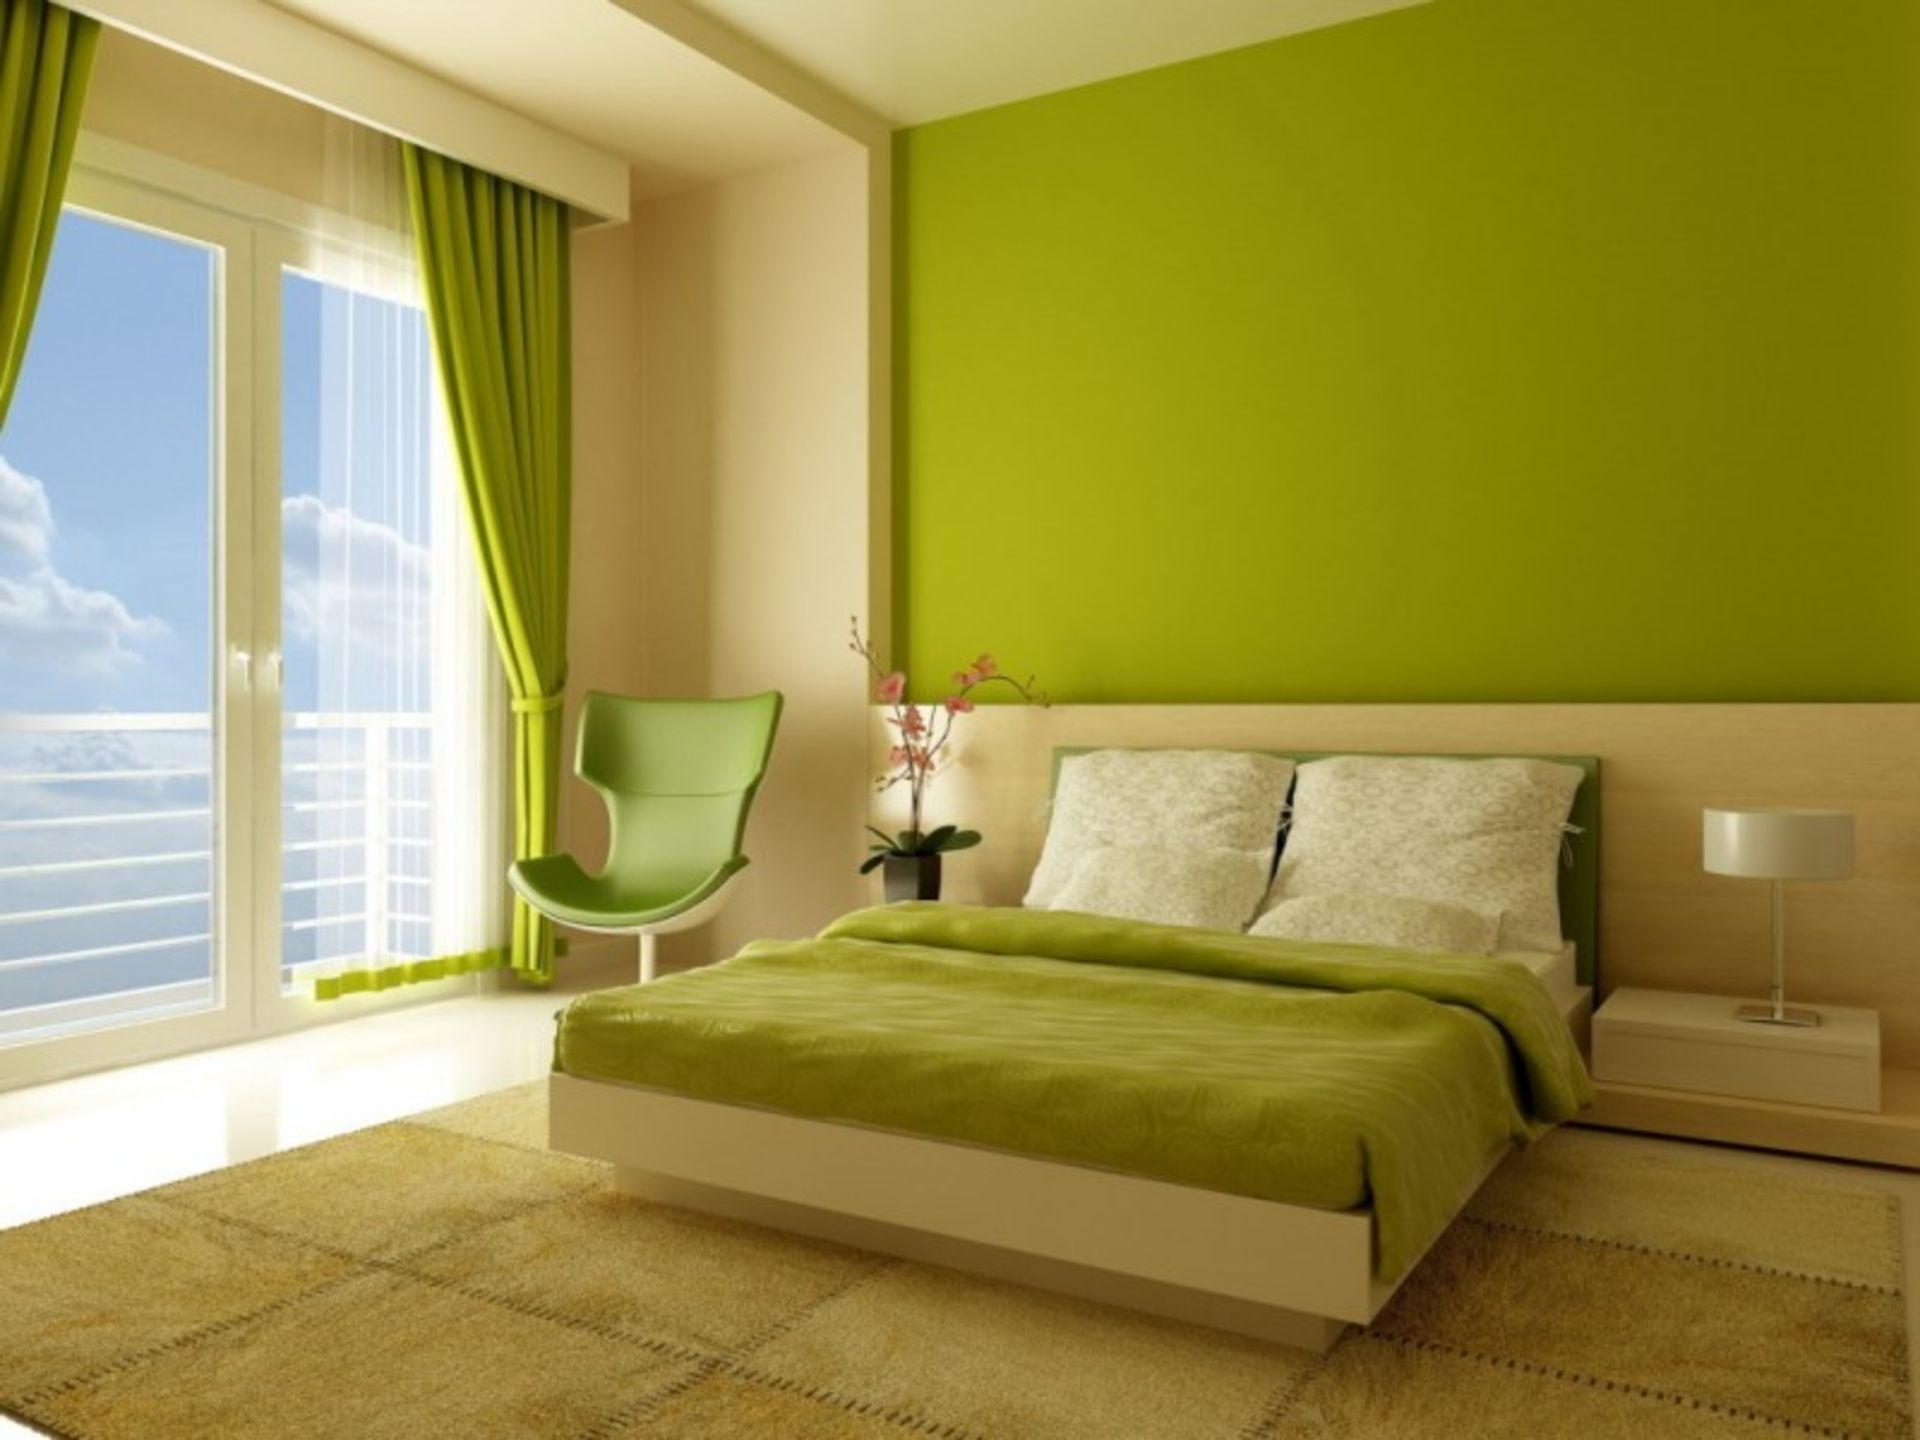 Brown and green bedroom decorating ideas - Office Fresh Lime Green And Light Brown Bedroom Decorating Color